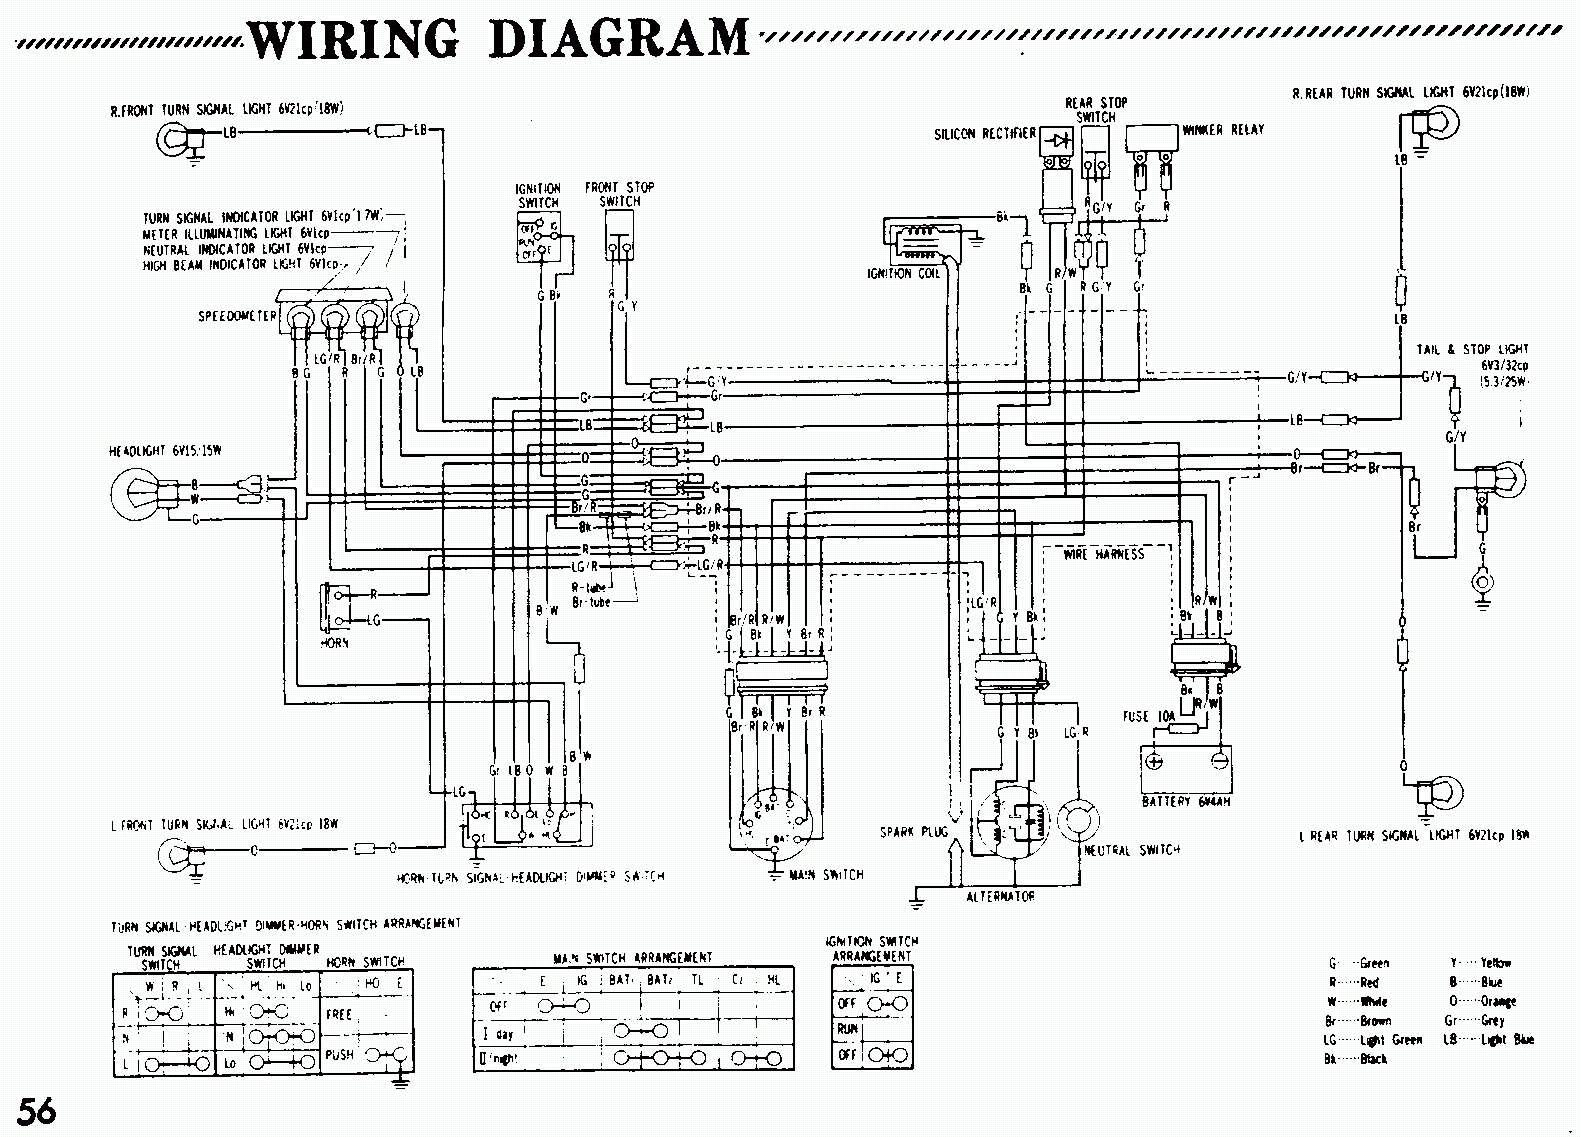 Saab 900 Wiring Diagram Page 4 And Schematics 1990 Engine Diagrams Instructions Rh Ww5 Sssssssssssssssssddddsssssssssssss W Free 1994